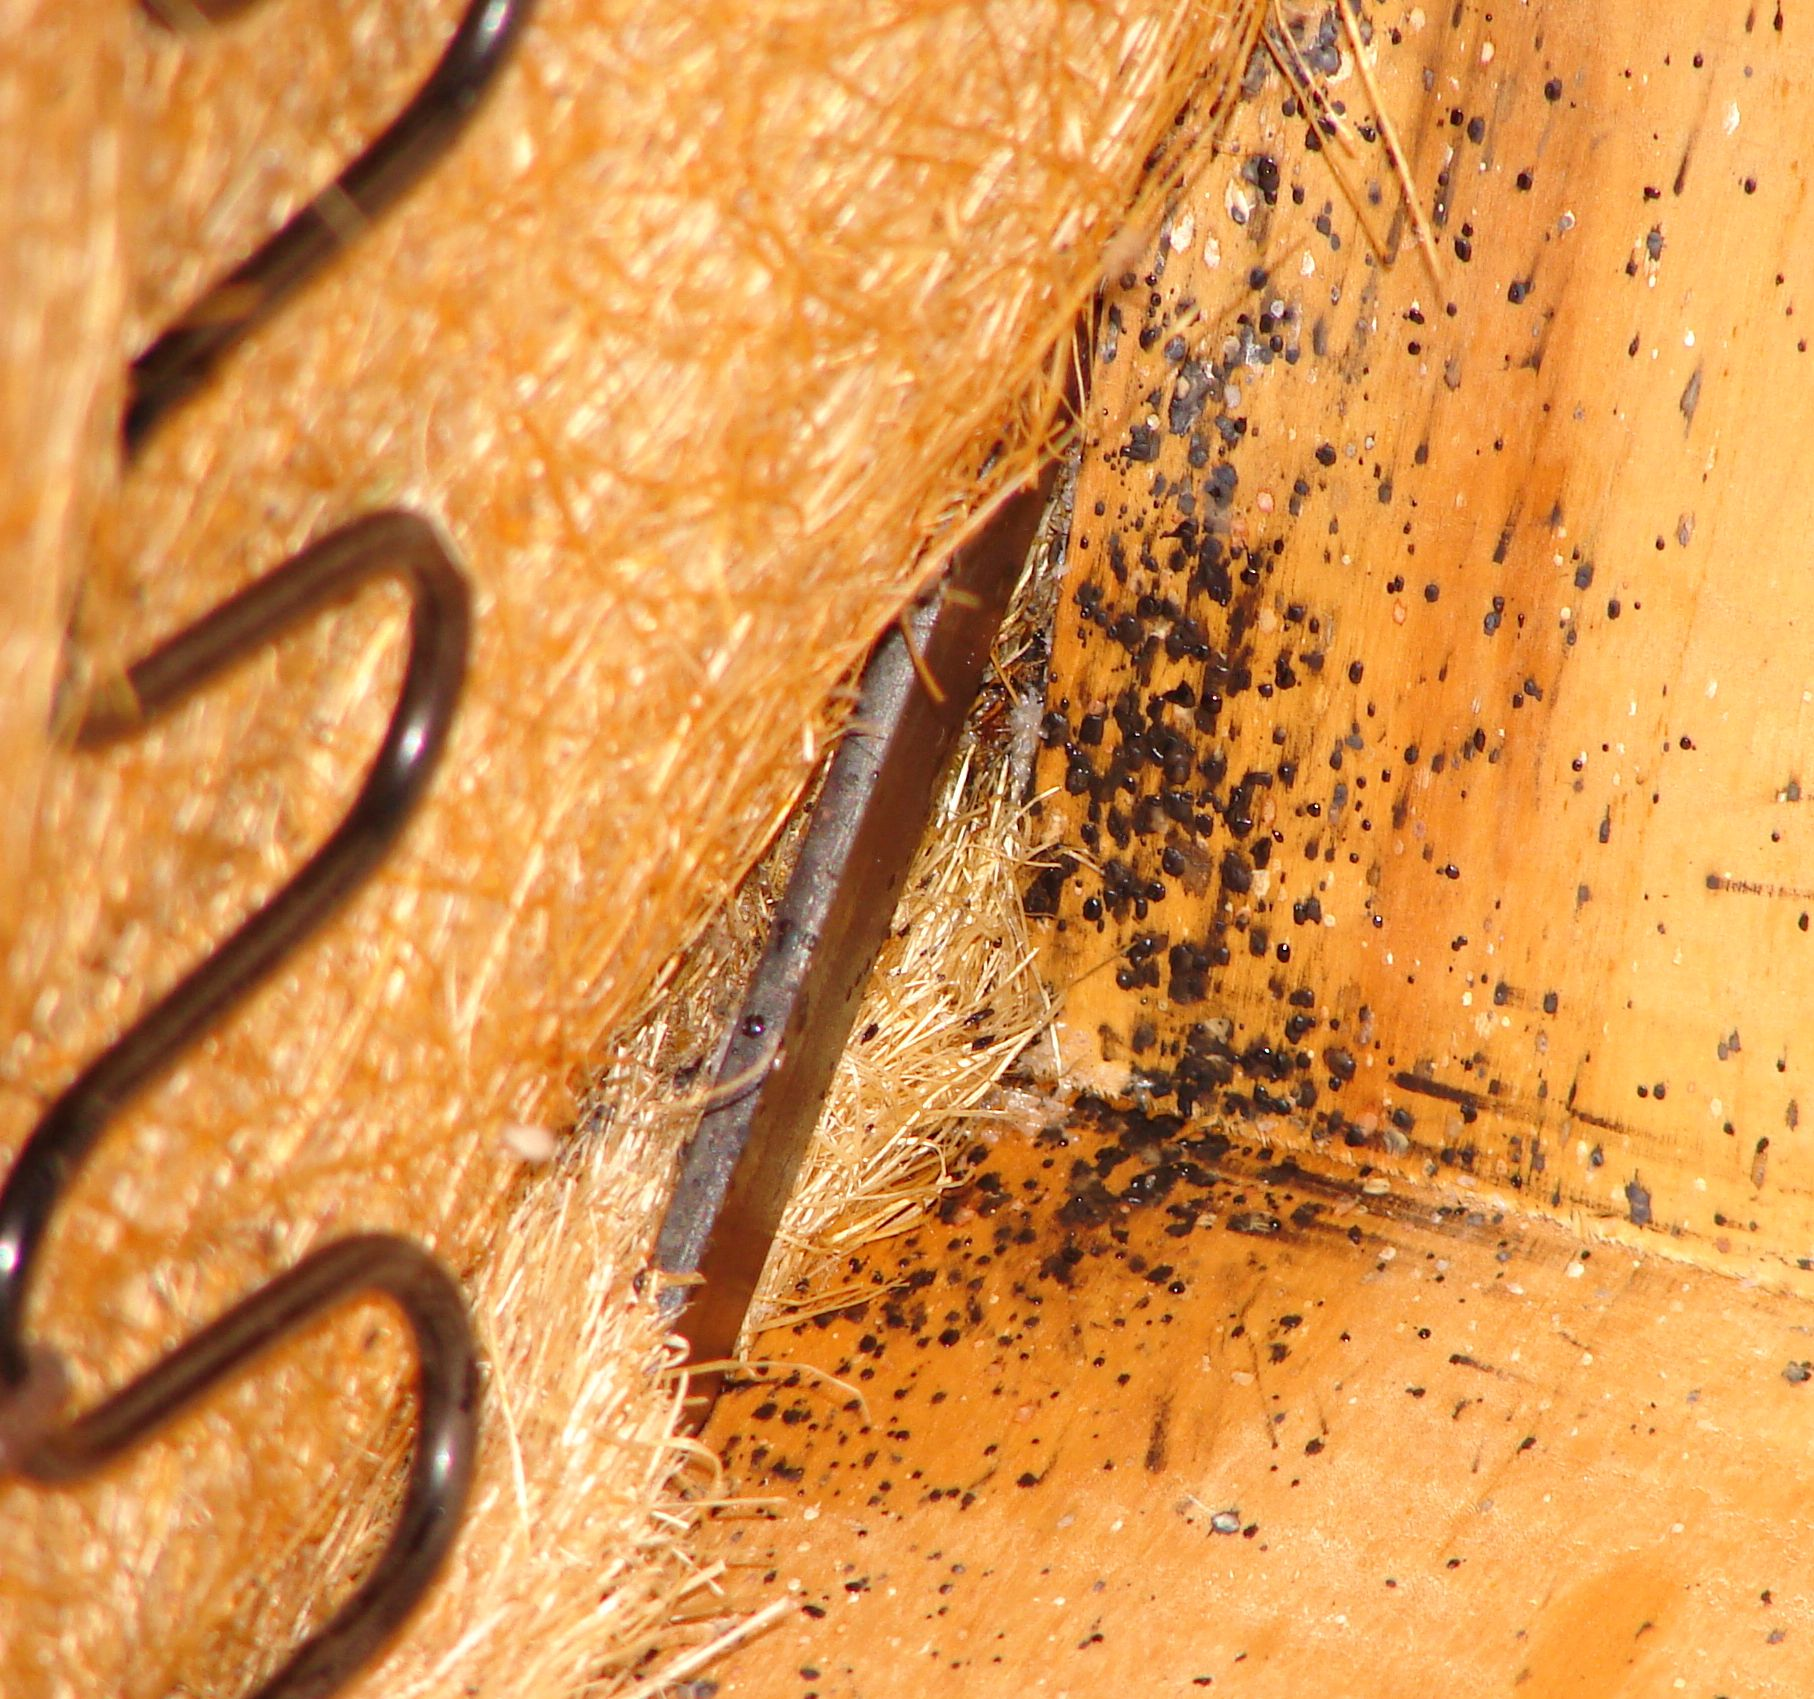 Bed Bug Fecal Spotting On Underside Of Sofa